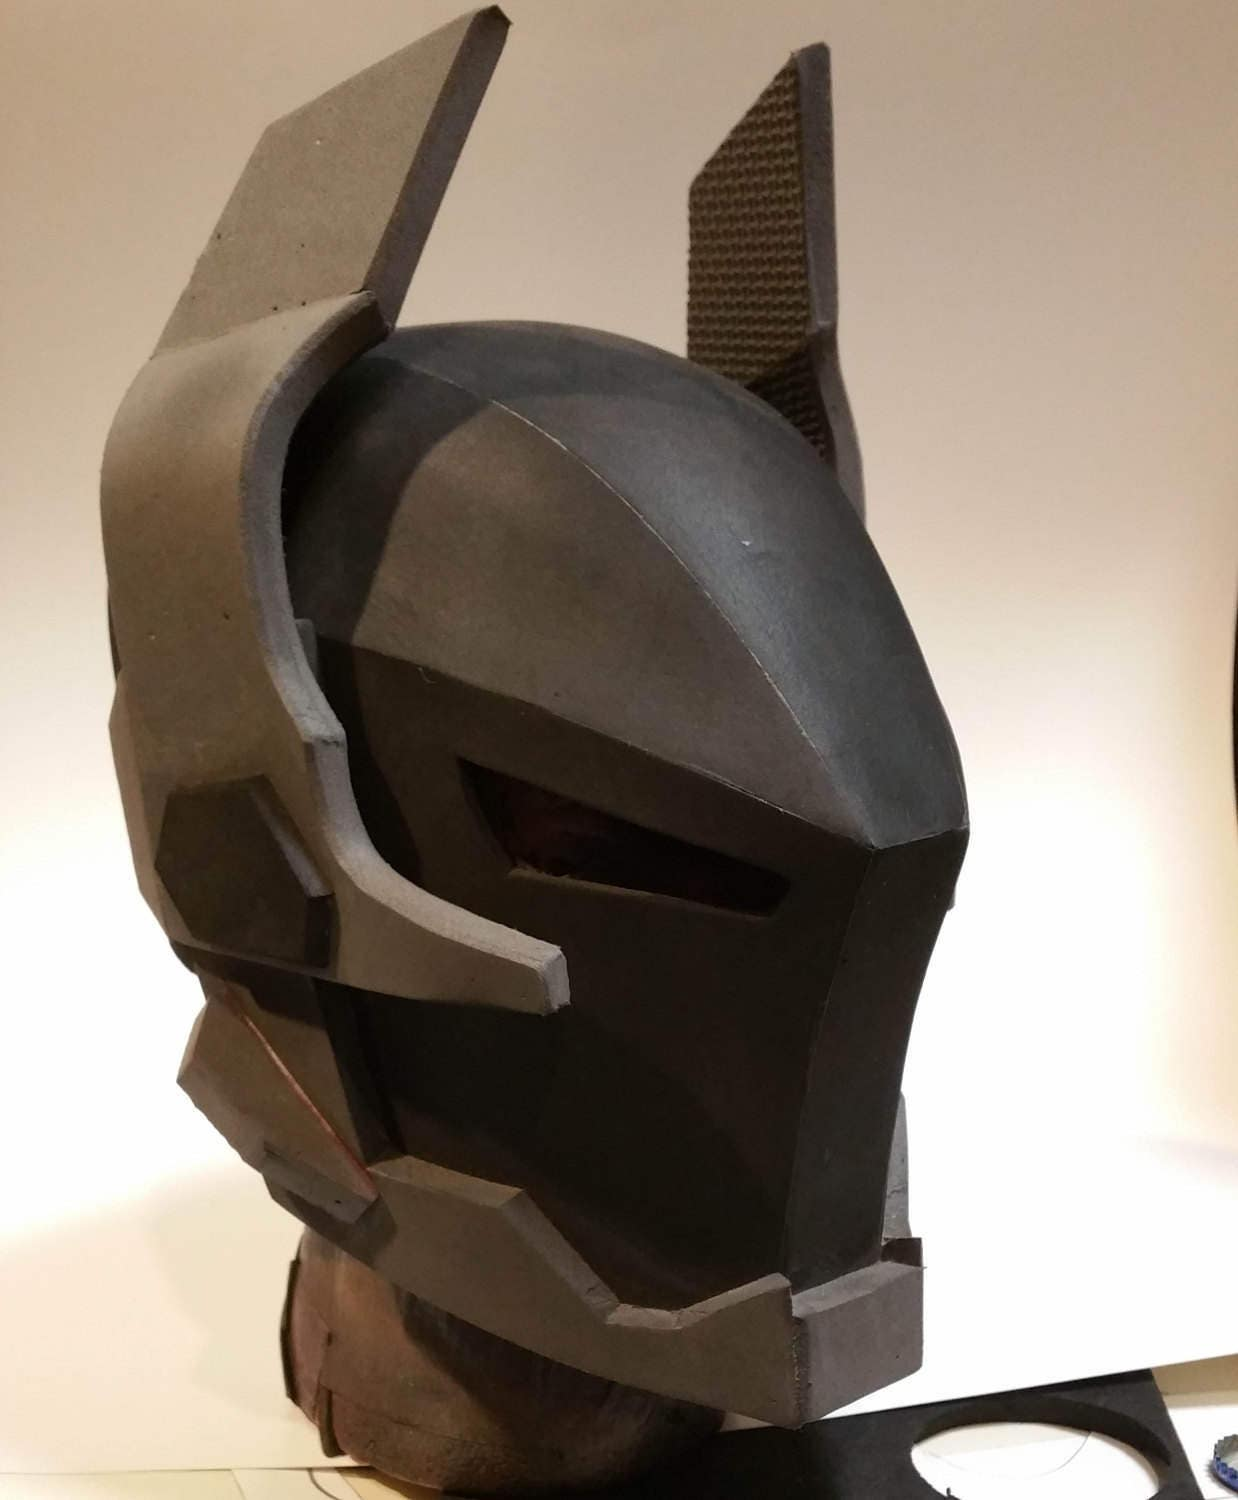 knight foam helmet template from xiengprod on etsy studio. Black Bedroom Furniture Sets. Home Design Ideas